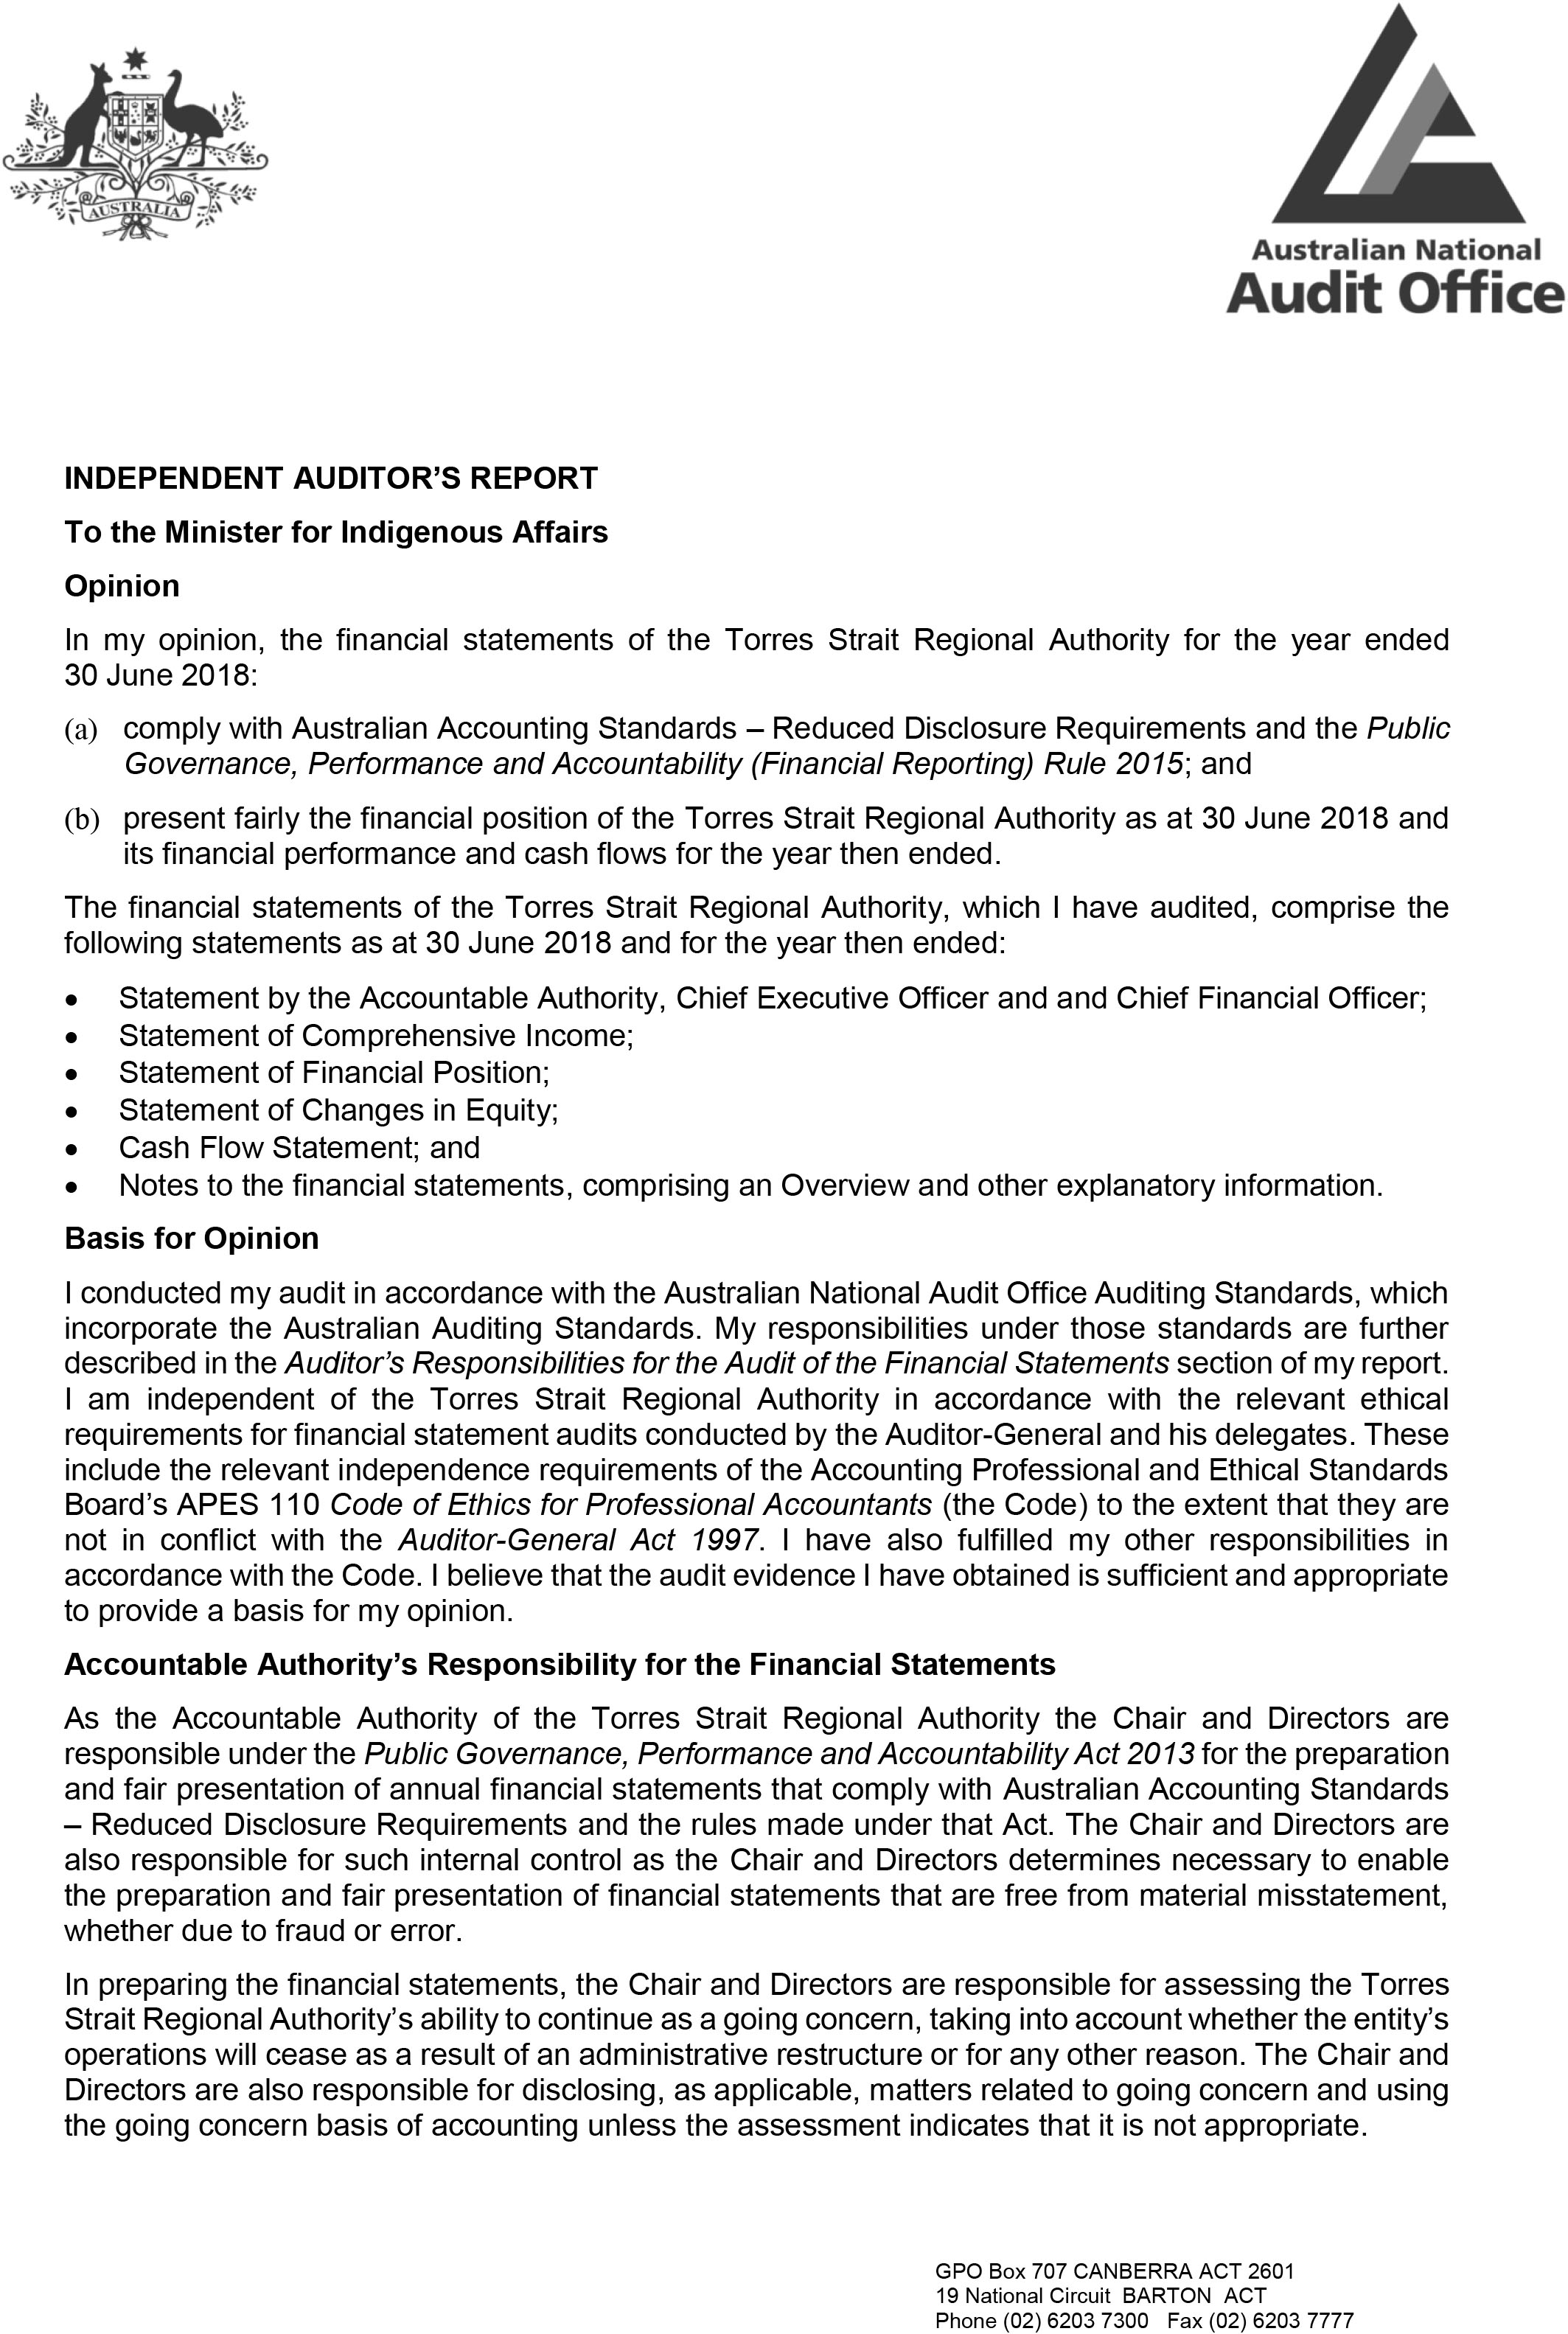 A photograph of the Independent Auditor's Report, page 1